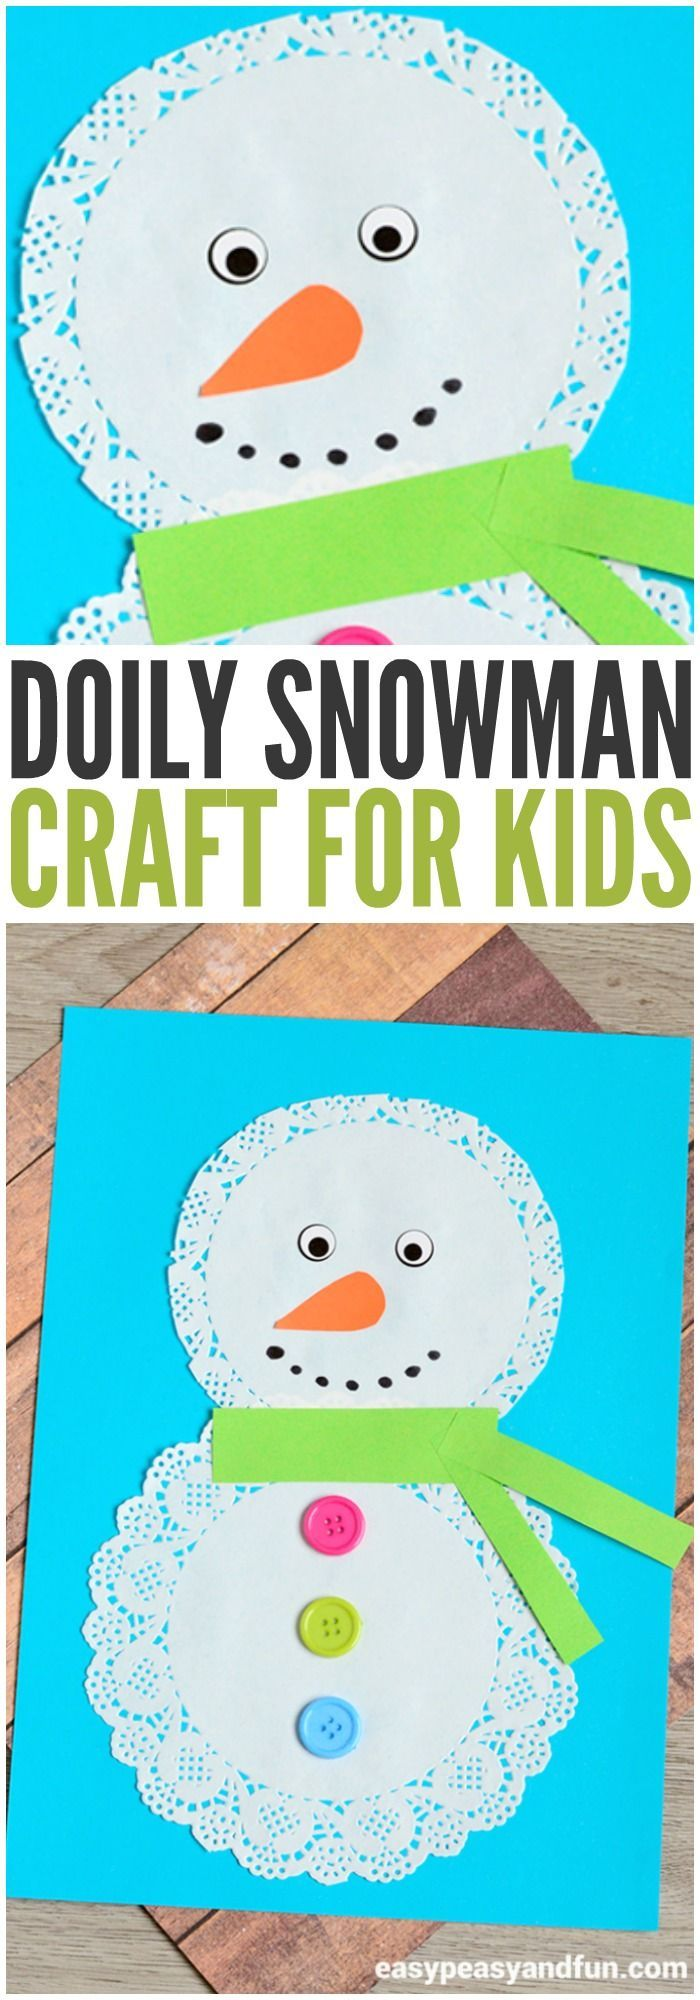 110 best Winter Learning images on Pinterest | Christmas crafts ...